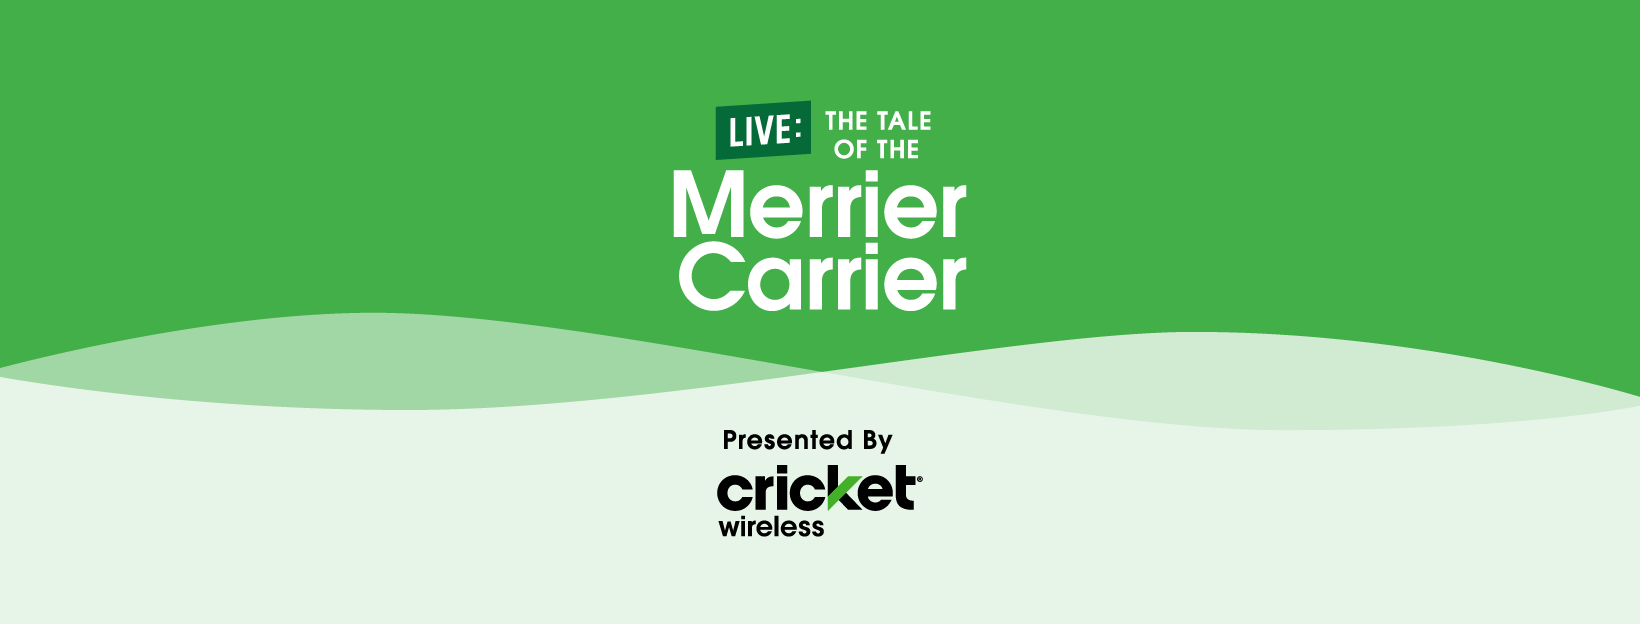 Cricket Wireless Uses Text Sweepstakes to Promote Guinness World Record Attempt